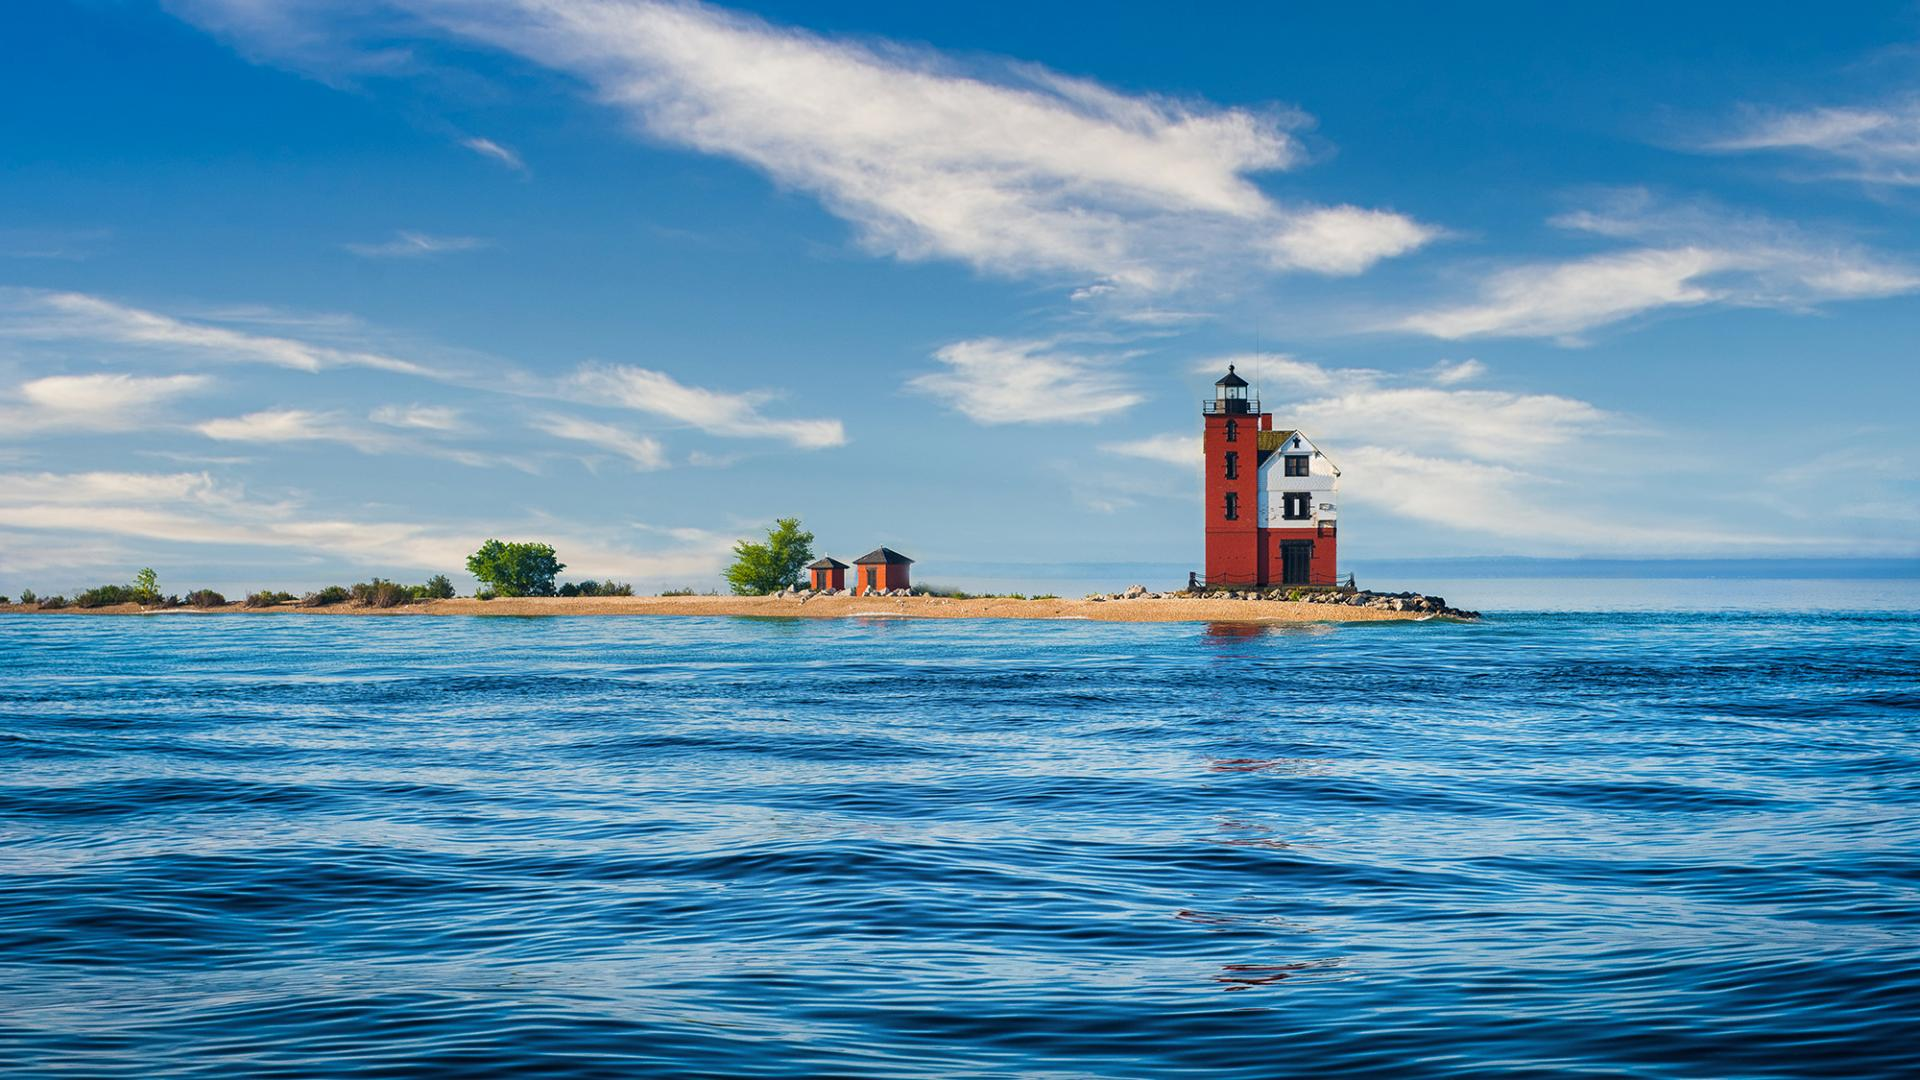 Image of lighthouse on Round Island in Lake Michigan